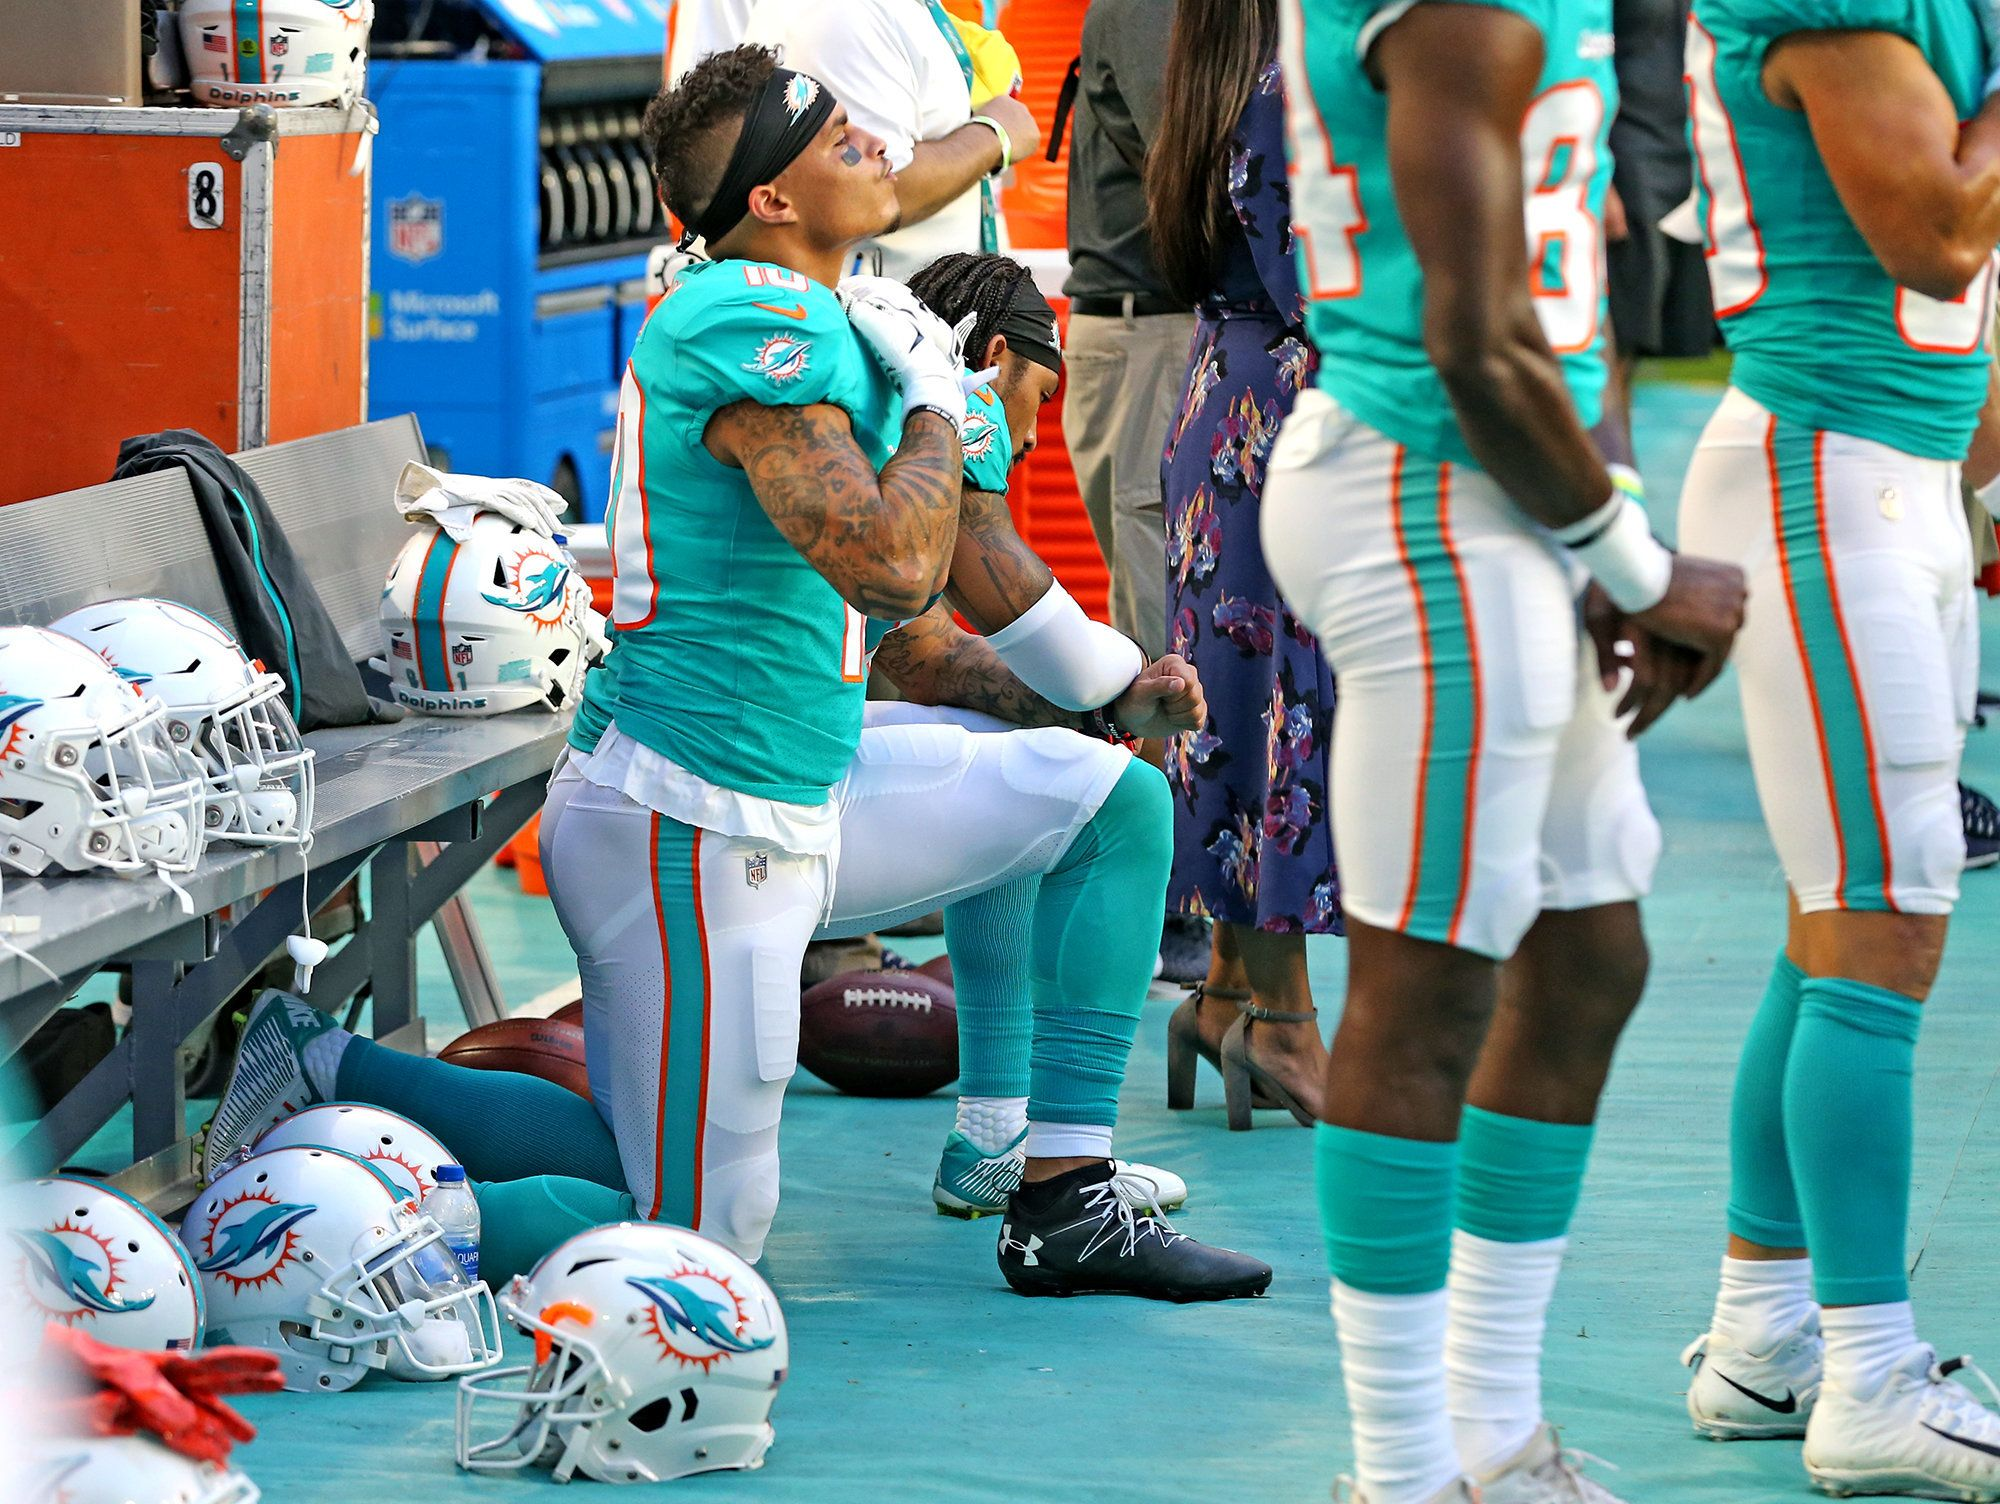 Miami Dolphins receivers Kenny Stills and Albert Wilson kneel during the national anthem as they prepare to play the Tampa Bay Buccaneers at Hard Rock Stadium in Miami Gardens, Fla., on Thursday, Aug. 9, 2018. The Bucs won, 26-24. (Charles Trainor Jr./Miami Herald/TNS via Getty Images)